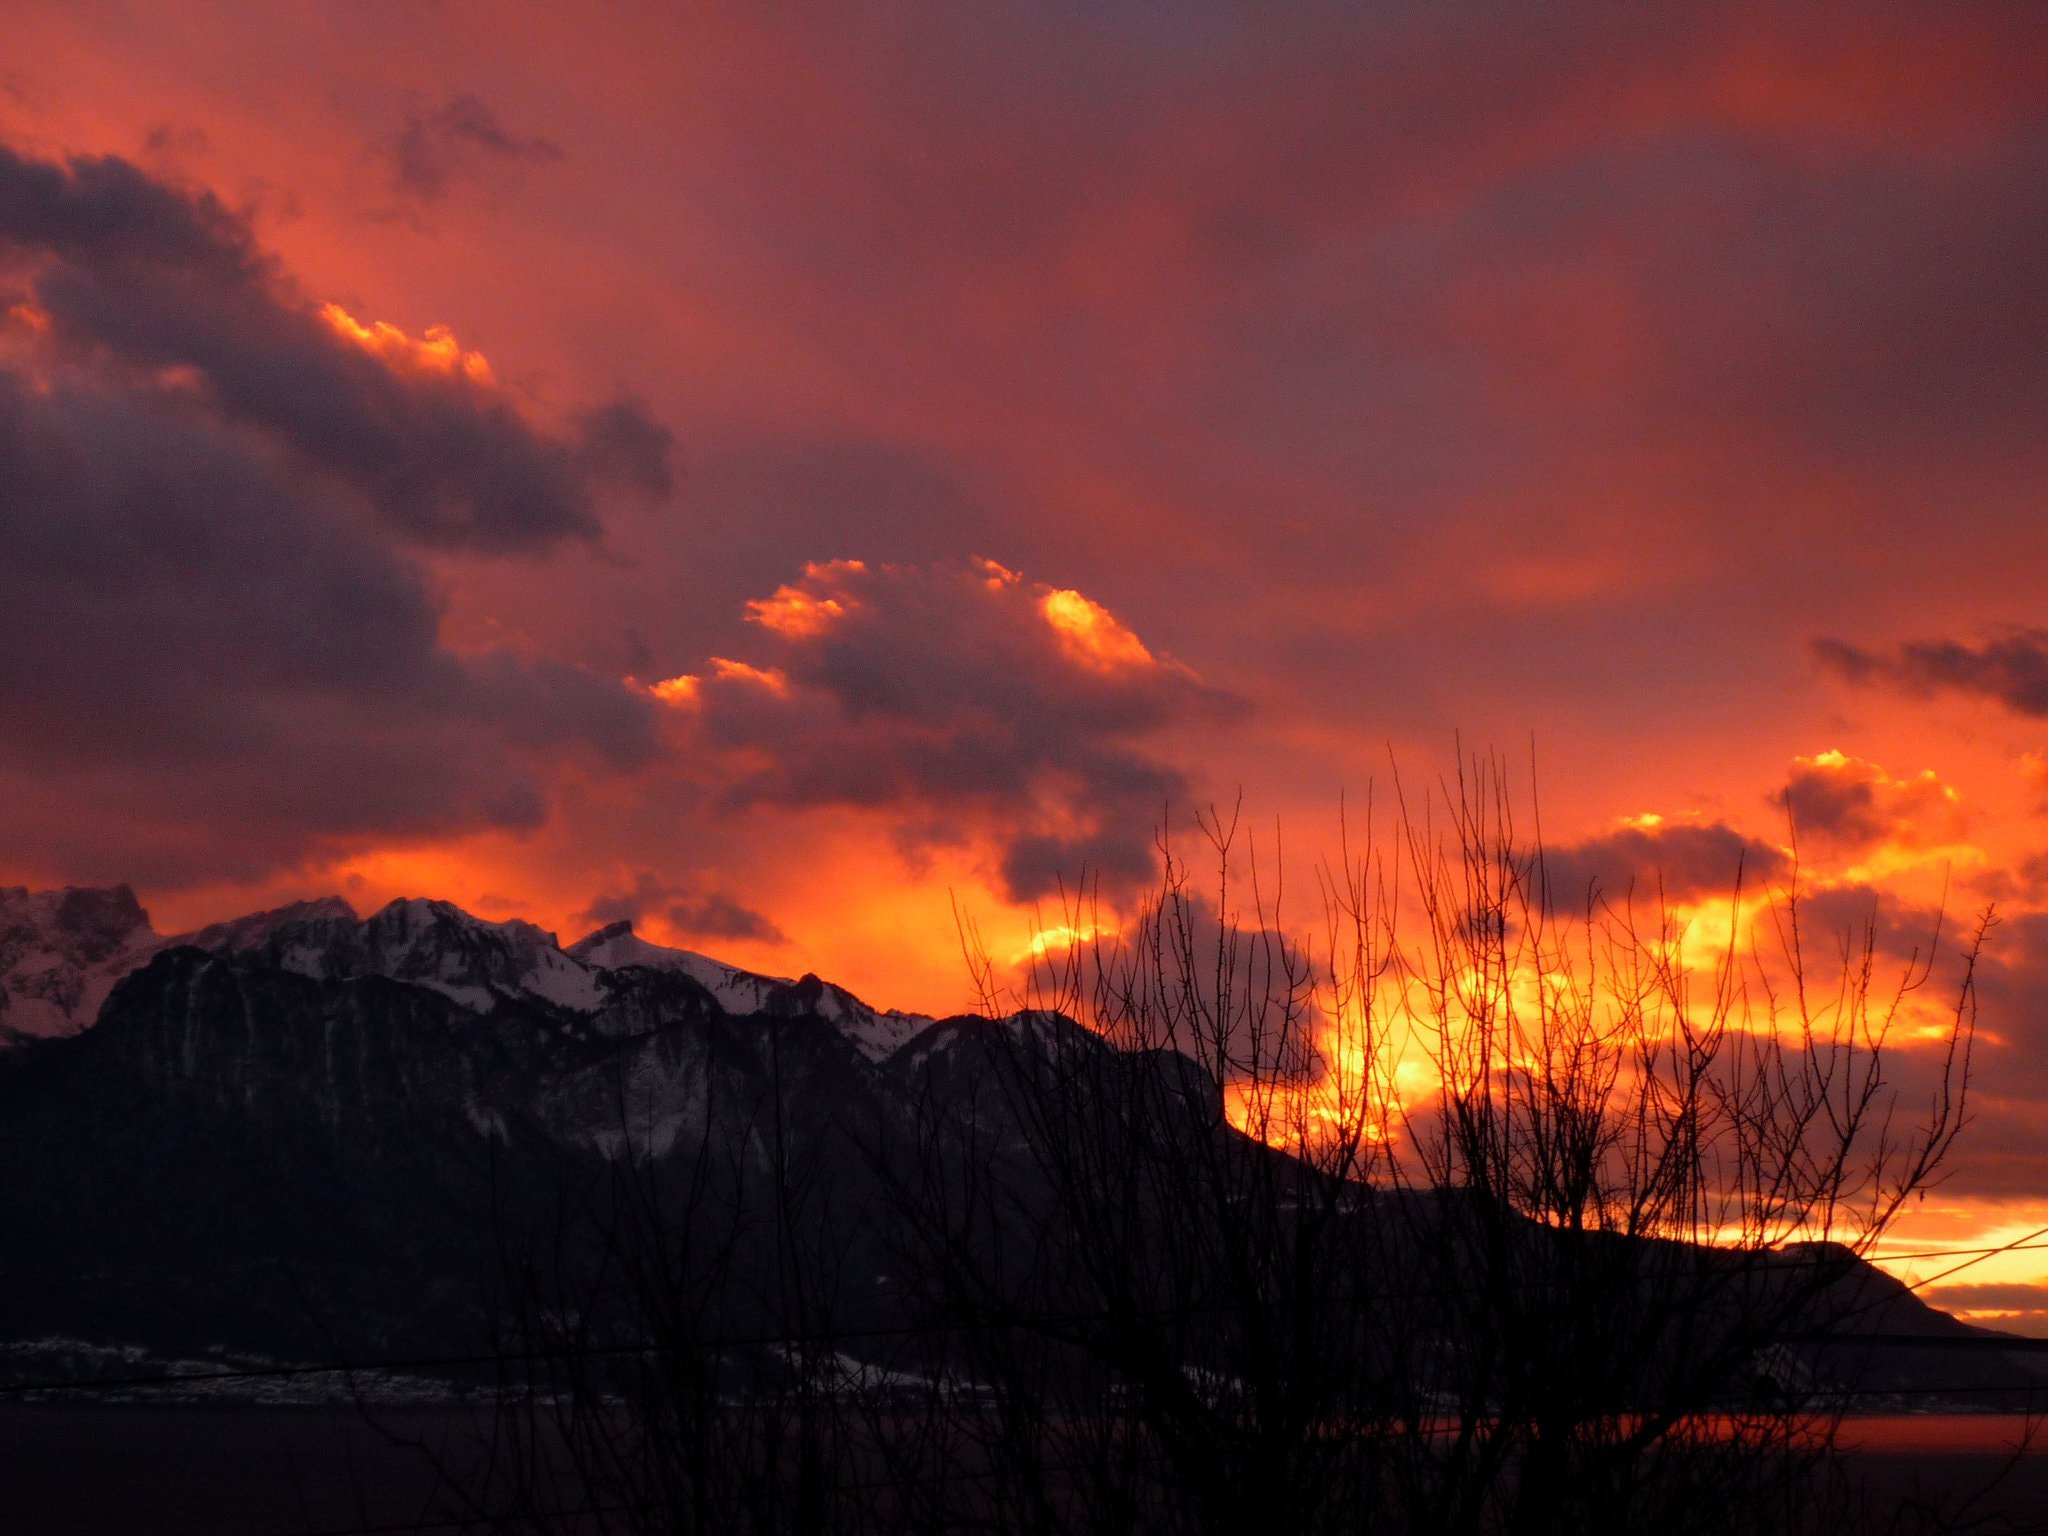 Photograph Burning sky by Charlotte Frey on 500px